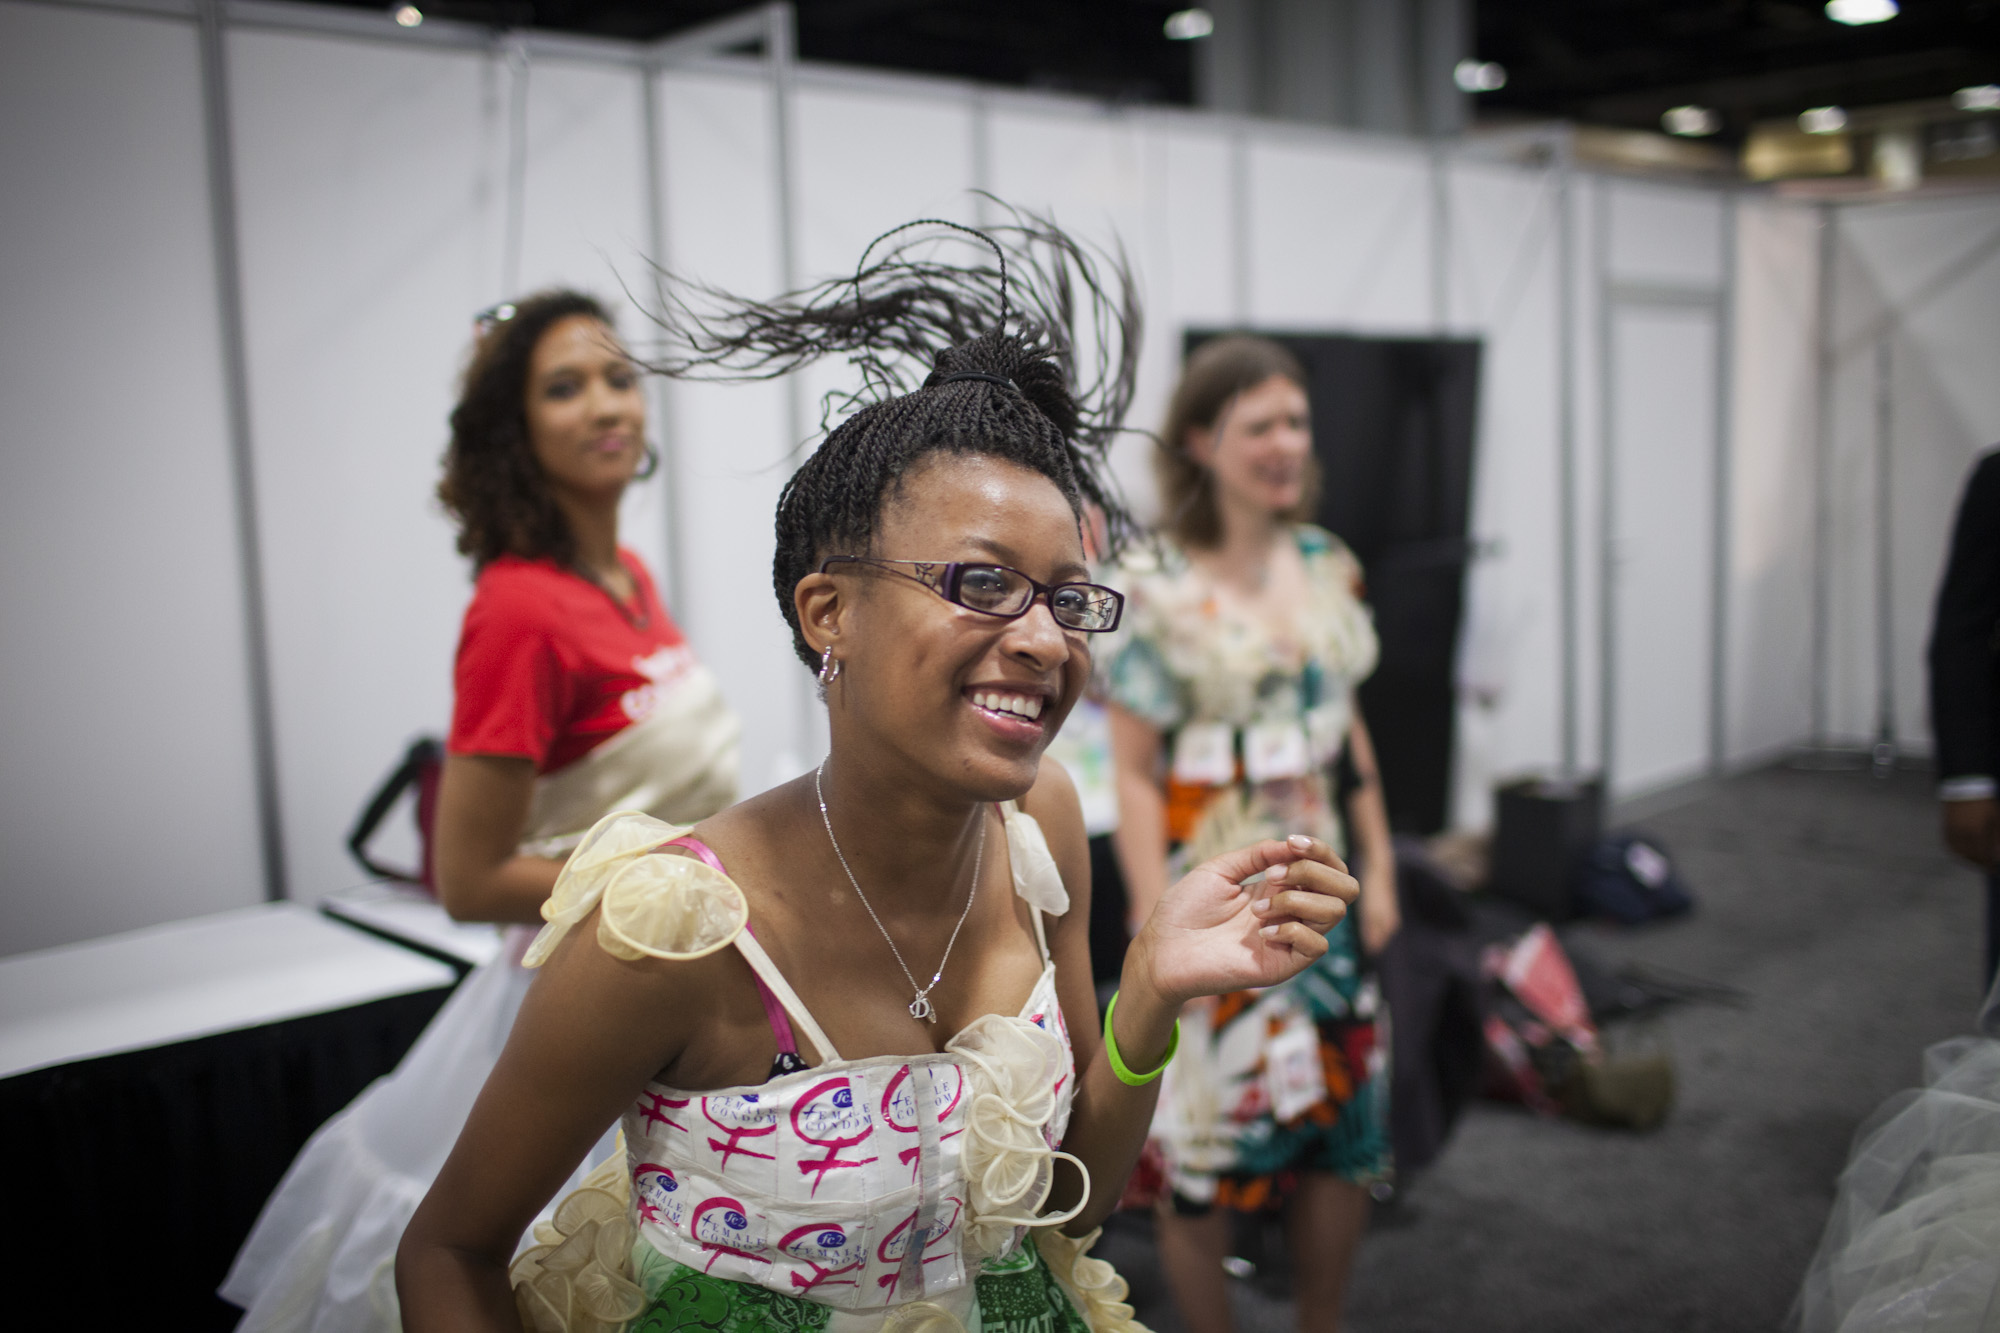 A fashion show at the 19th International AIDS Conference aimed to raise awareness of female condoms -- the only woman-initiated means of contraception that can prevent HIV infection. Diamond Gillespie has a laugh before going on stage. The top of her dress is decorated with female condom wrappers.